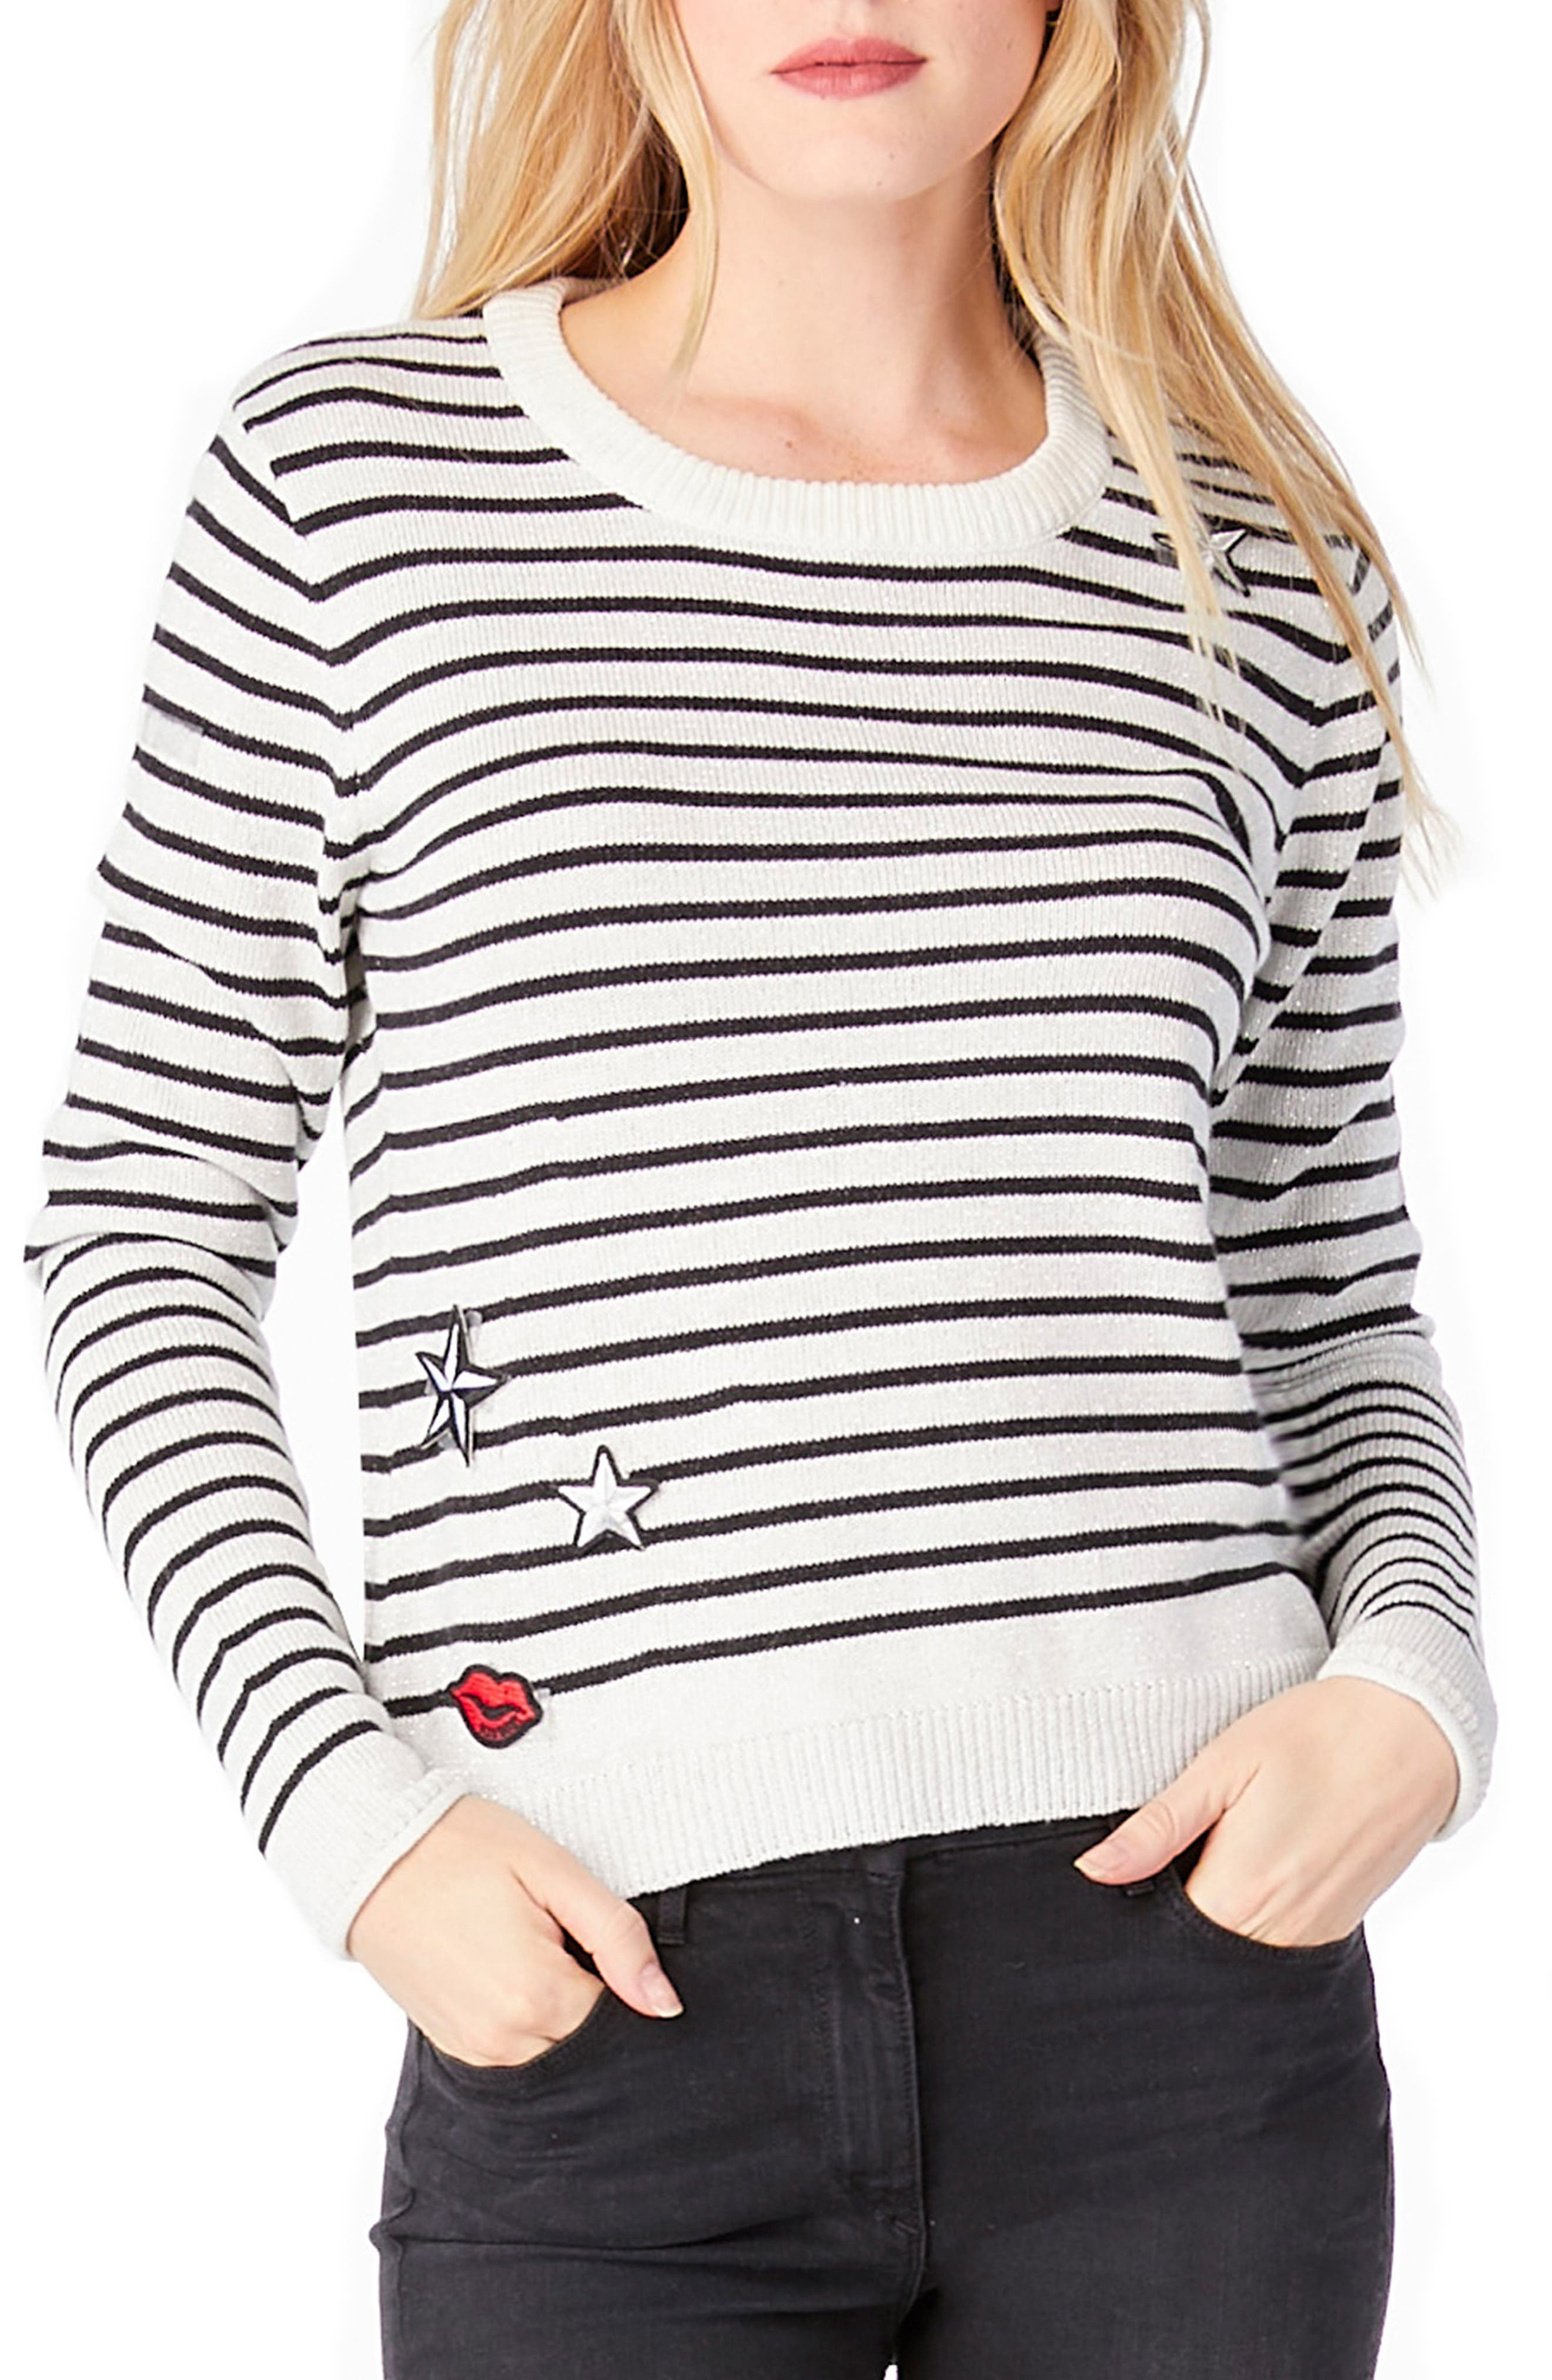 Stripe Patch Crewneck Sweater,                         Main,                         color, White/ Black